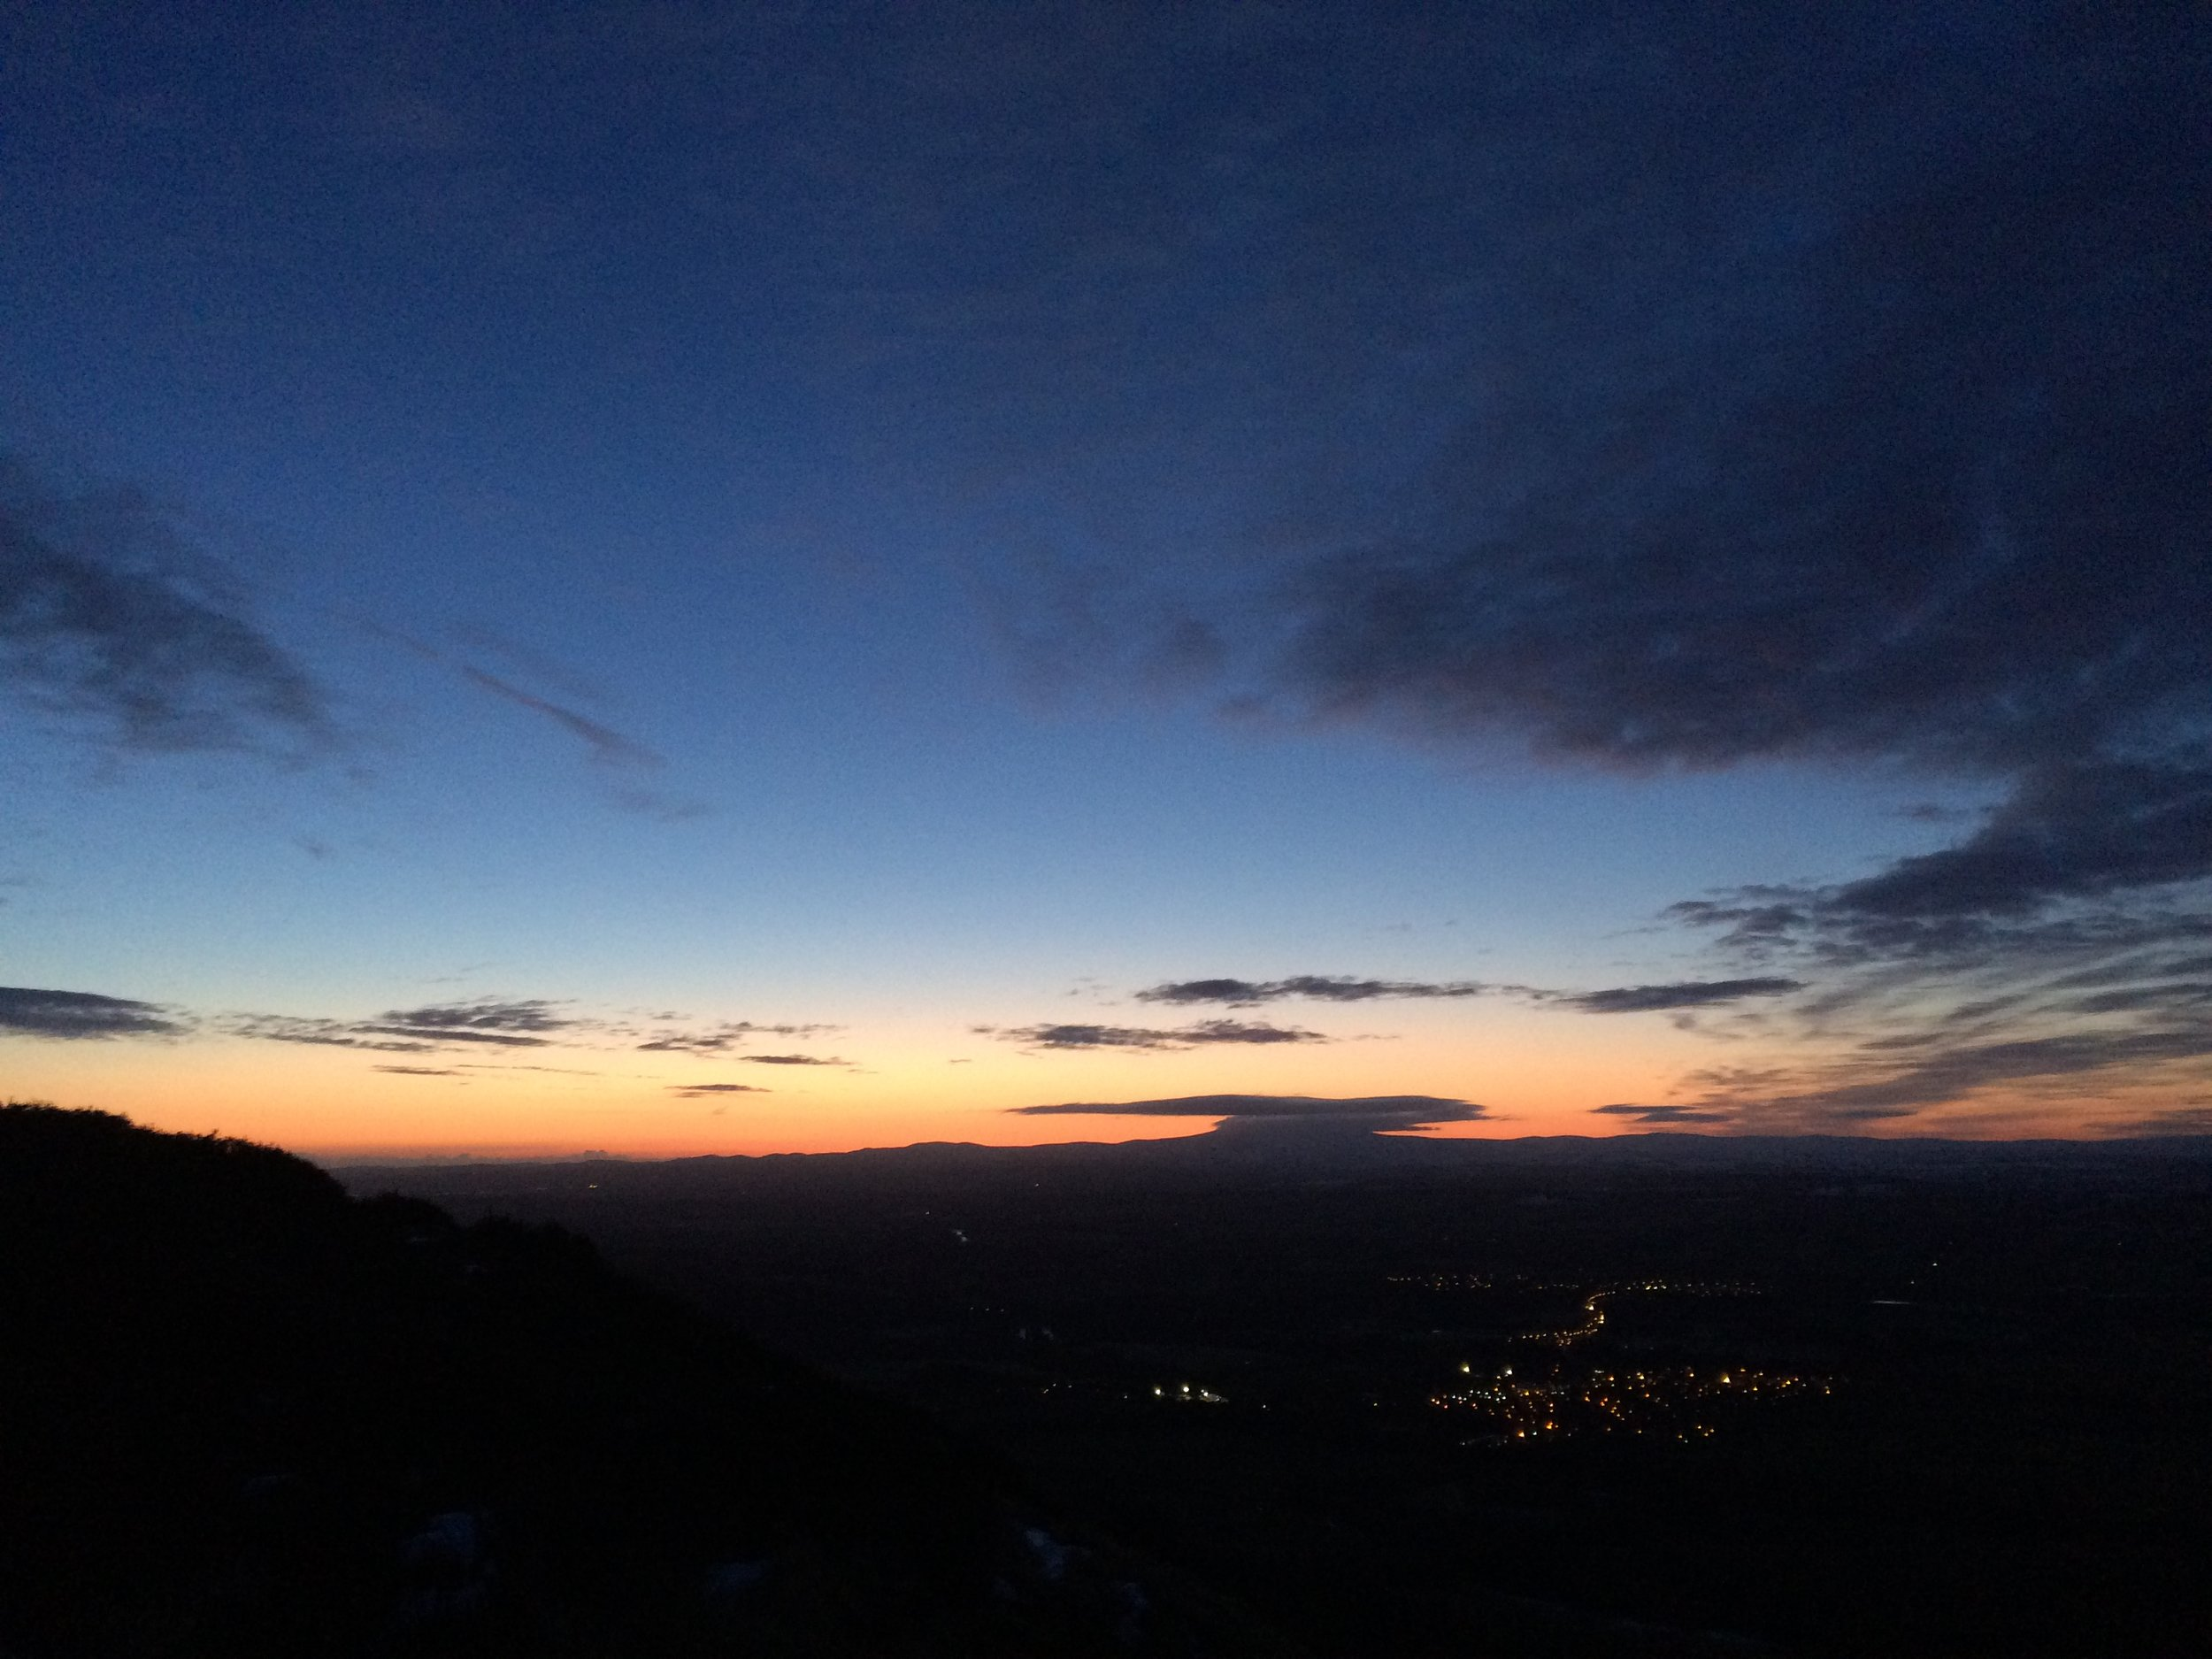 The sun rising over The Cheviot from the eastern top of The Eildons. The lights of Newtown St Boswells seen below.